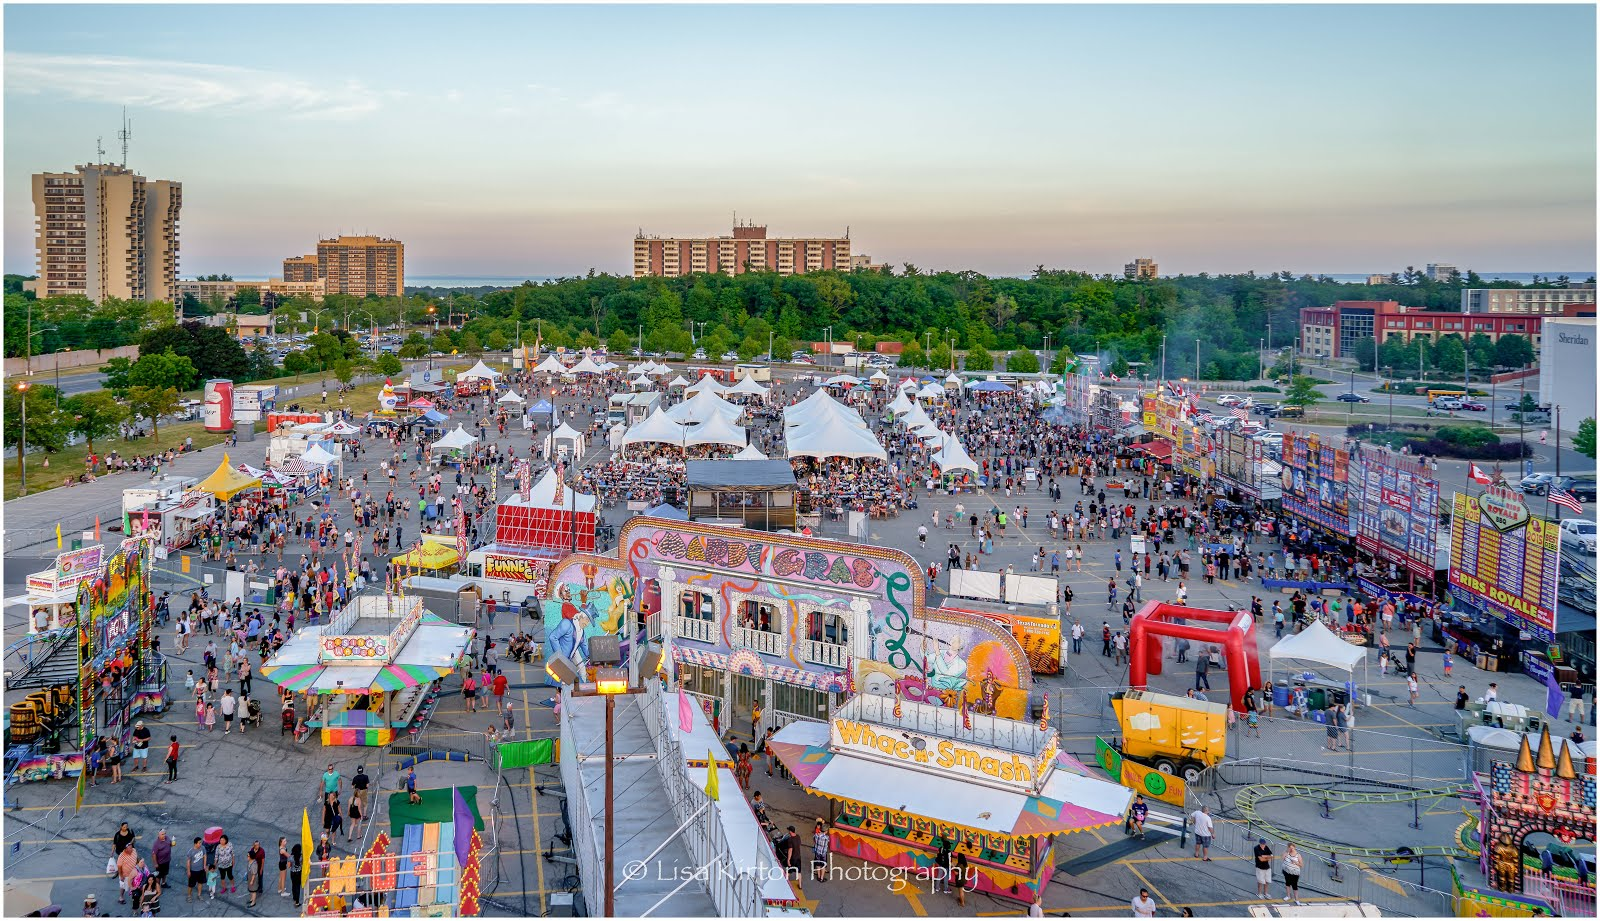 Ribfest Aerial View